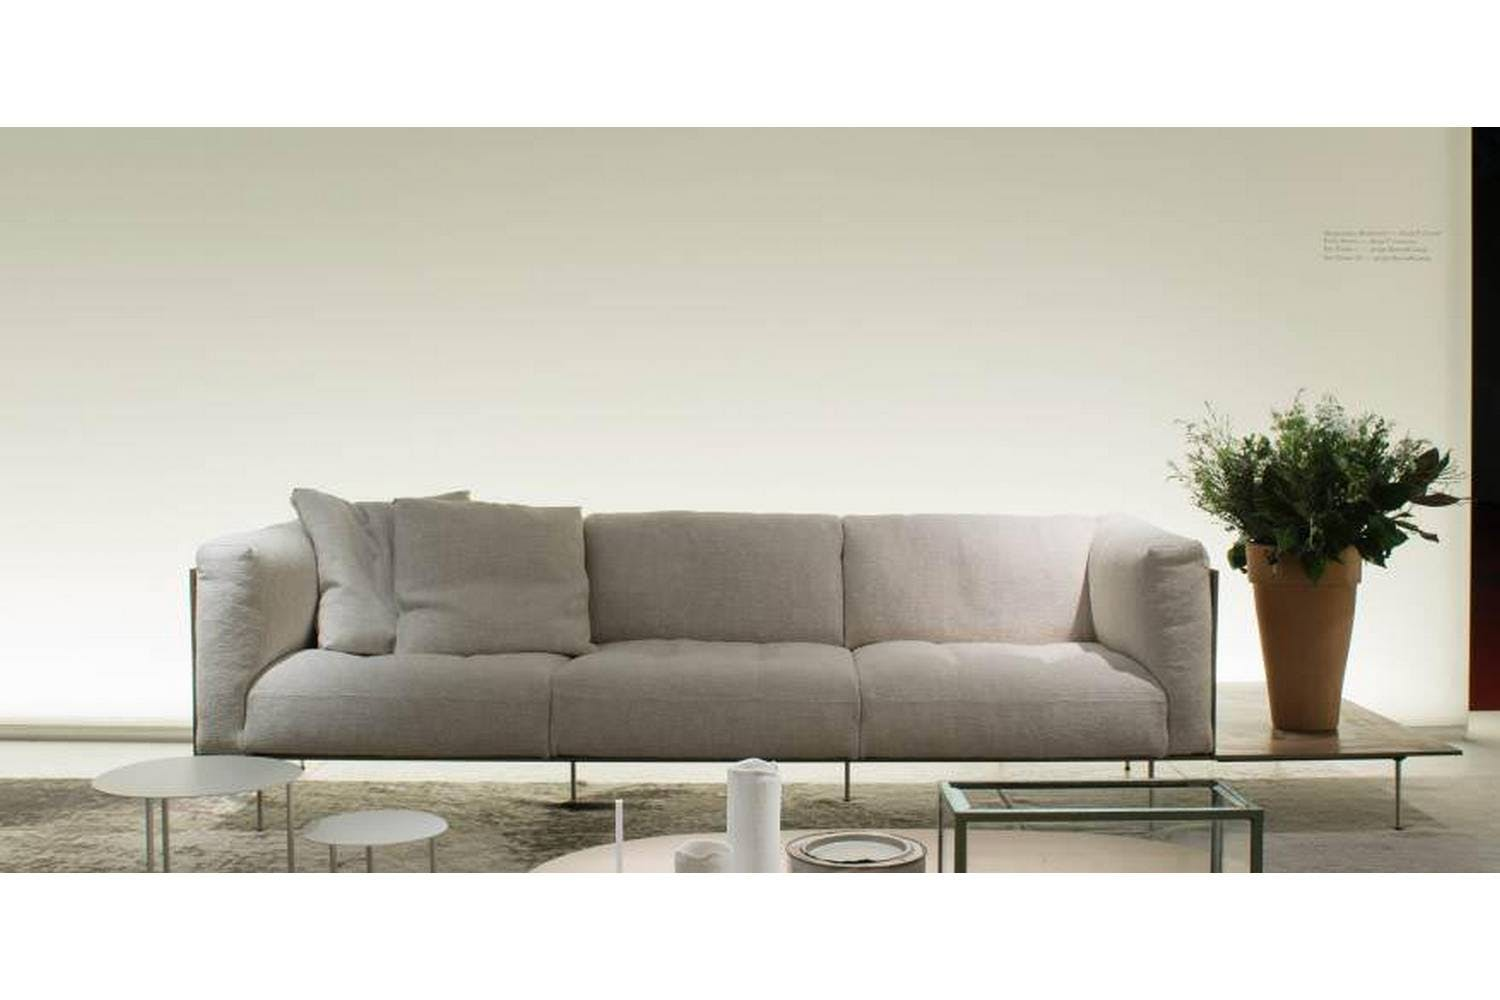 Rodwood Sofa by Piero Lissoni for Living Divani  Space ...